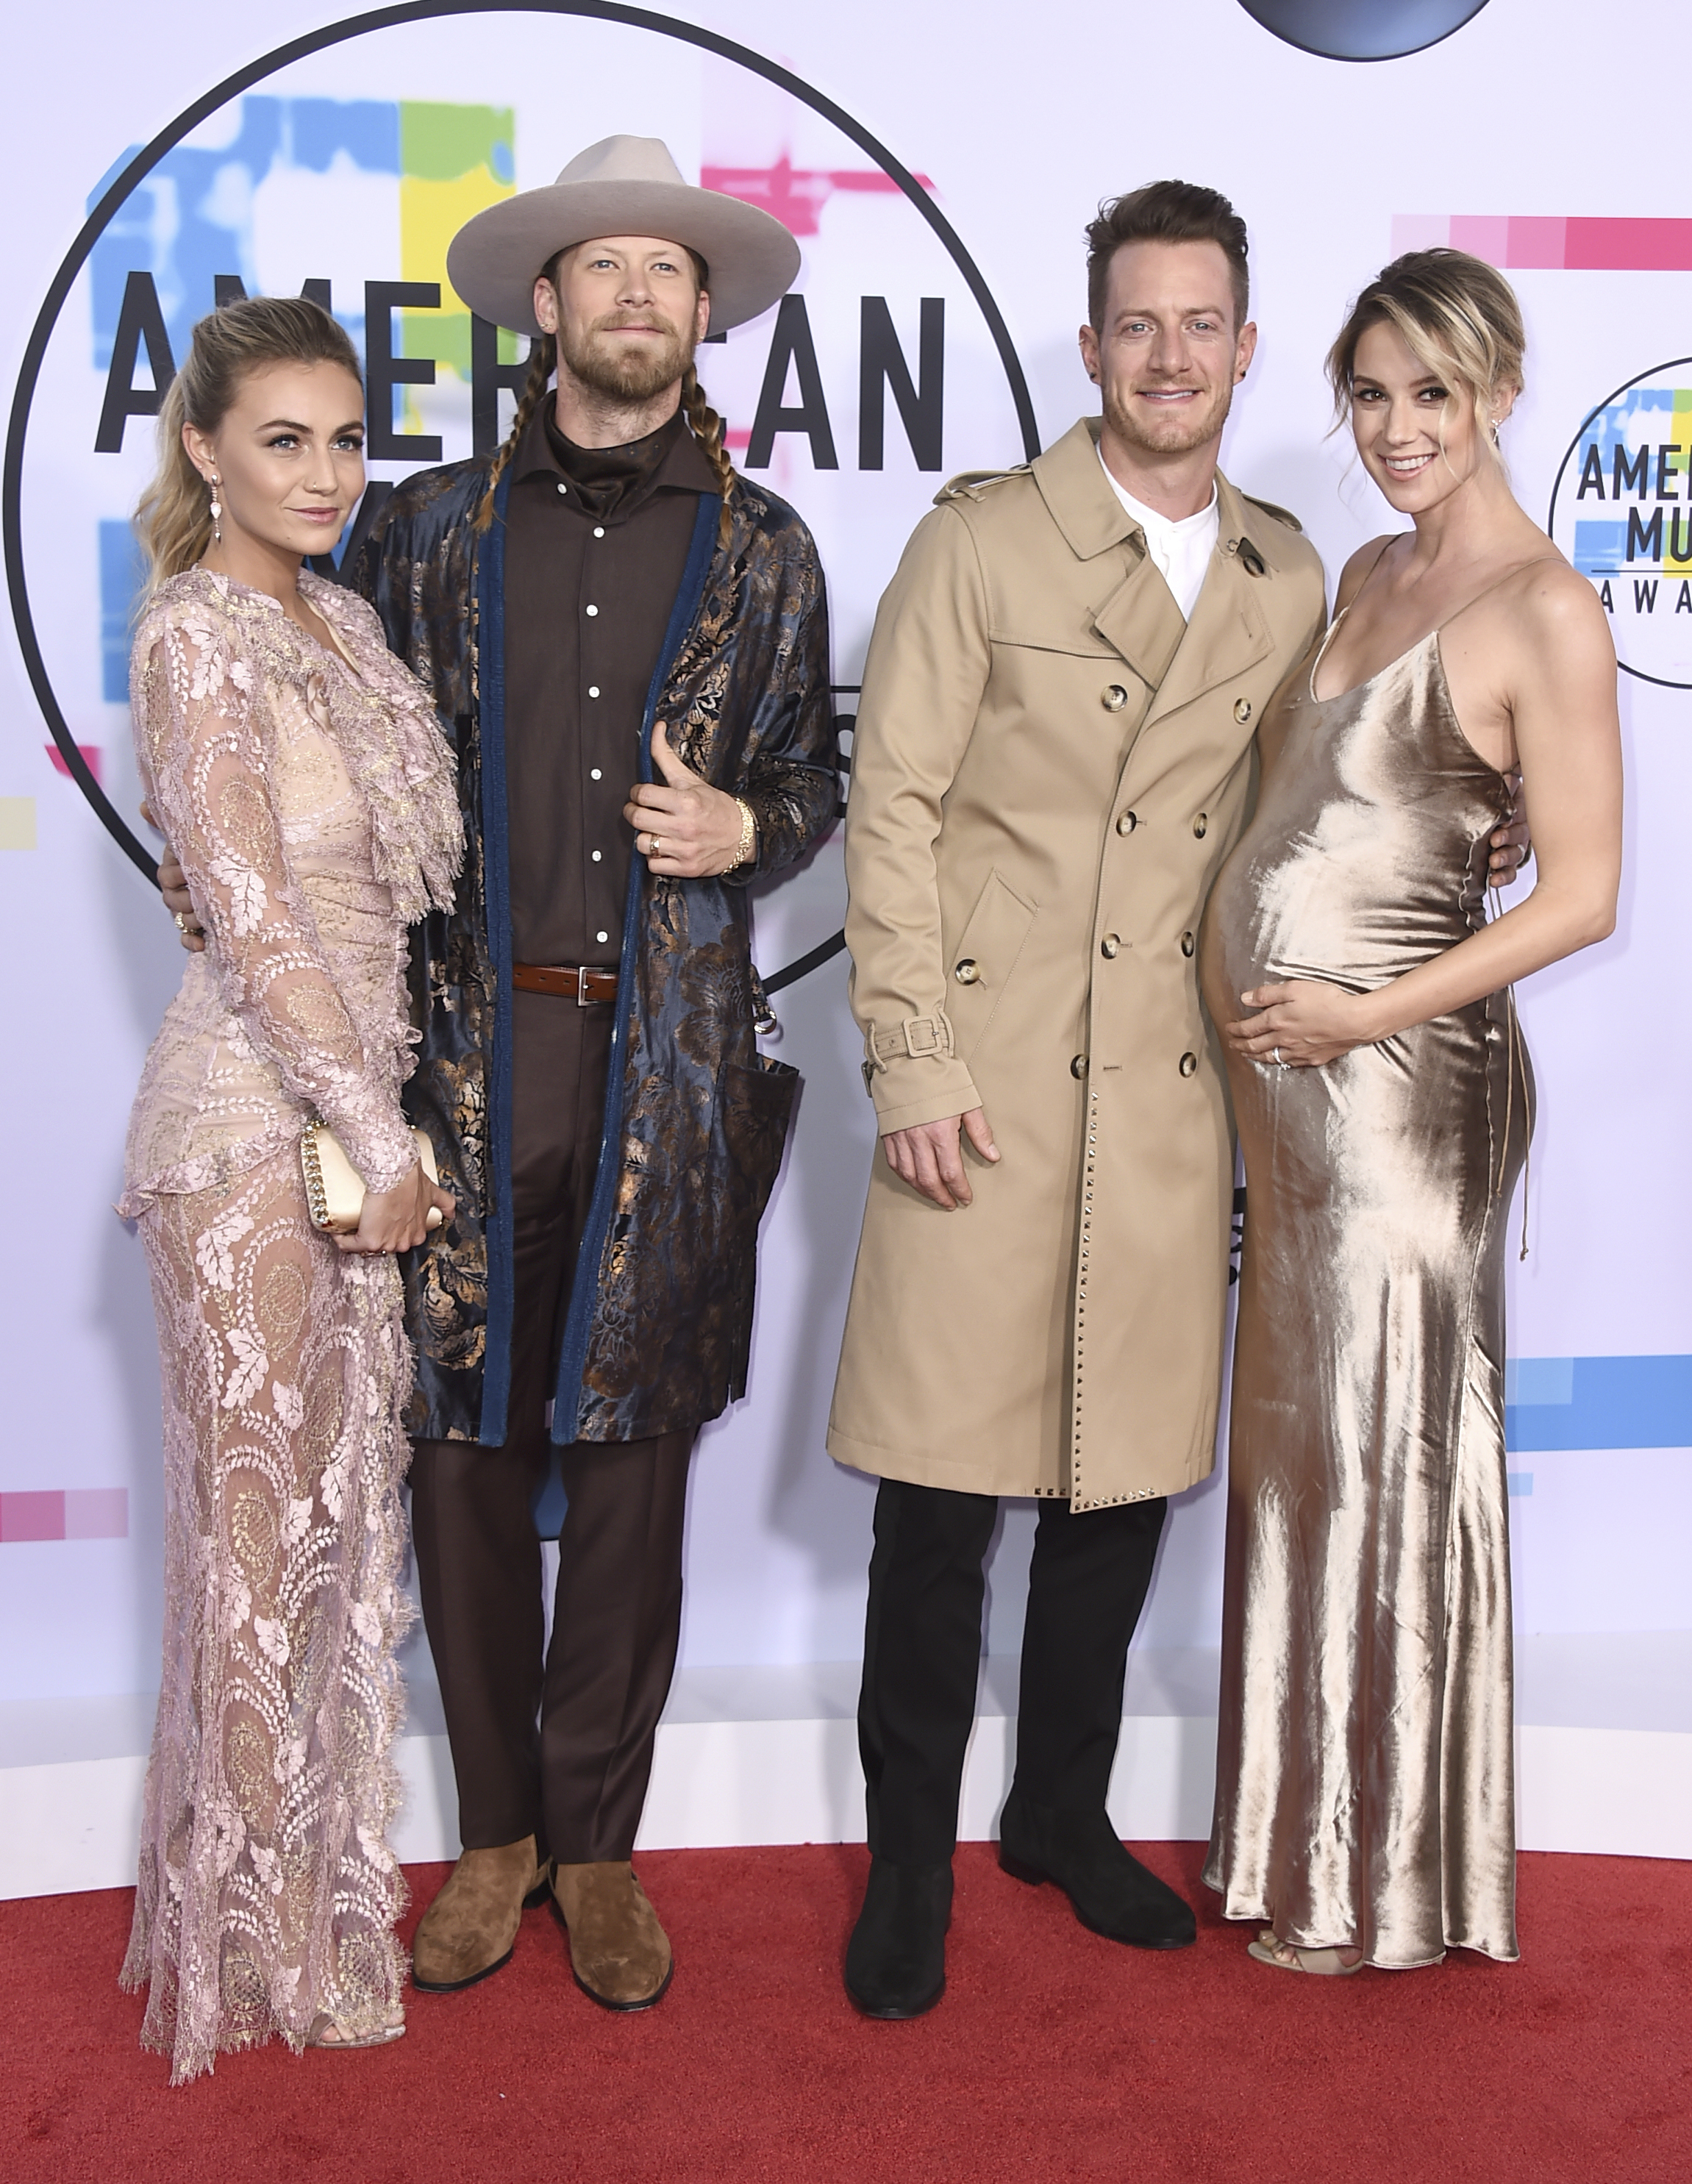 <div class='meta'><div class='origin-logo' data-origin='none'></div><span class='caption-text' data-credit='Jordan Strauss/Invision/AP'>Brittney Marie Cole, from left, Brian Kelley and Tyler Hubbard of Florida Georgia Line, and Hayley Hubbard arrive at the American Music Awards at the Microsoft Theater.</span></div>